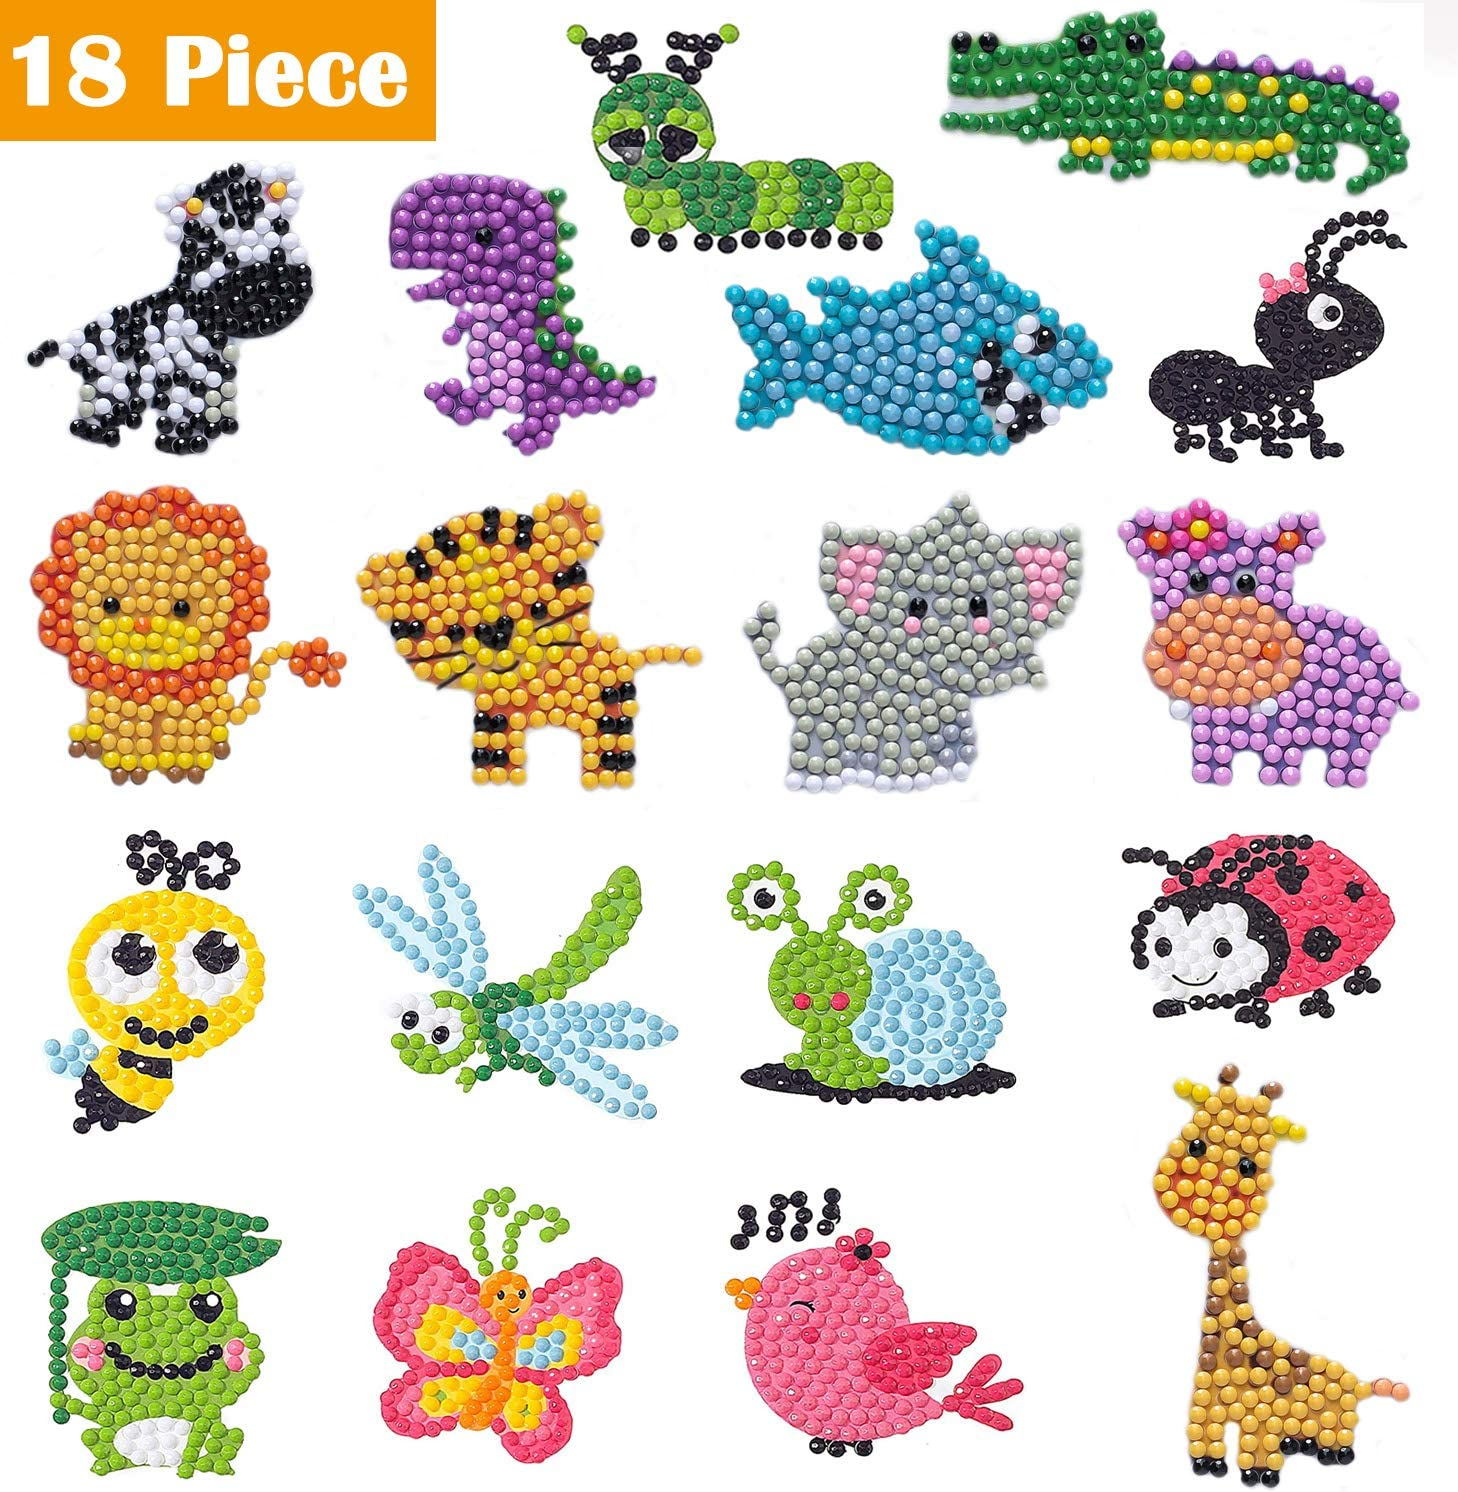 5D Diamond Art Painting Mosaic Stickers Kits for Kids Best Gift